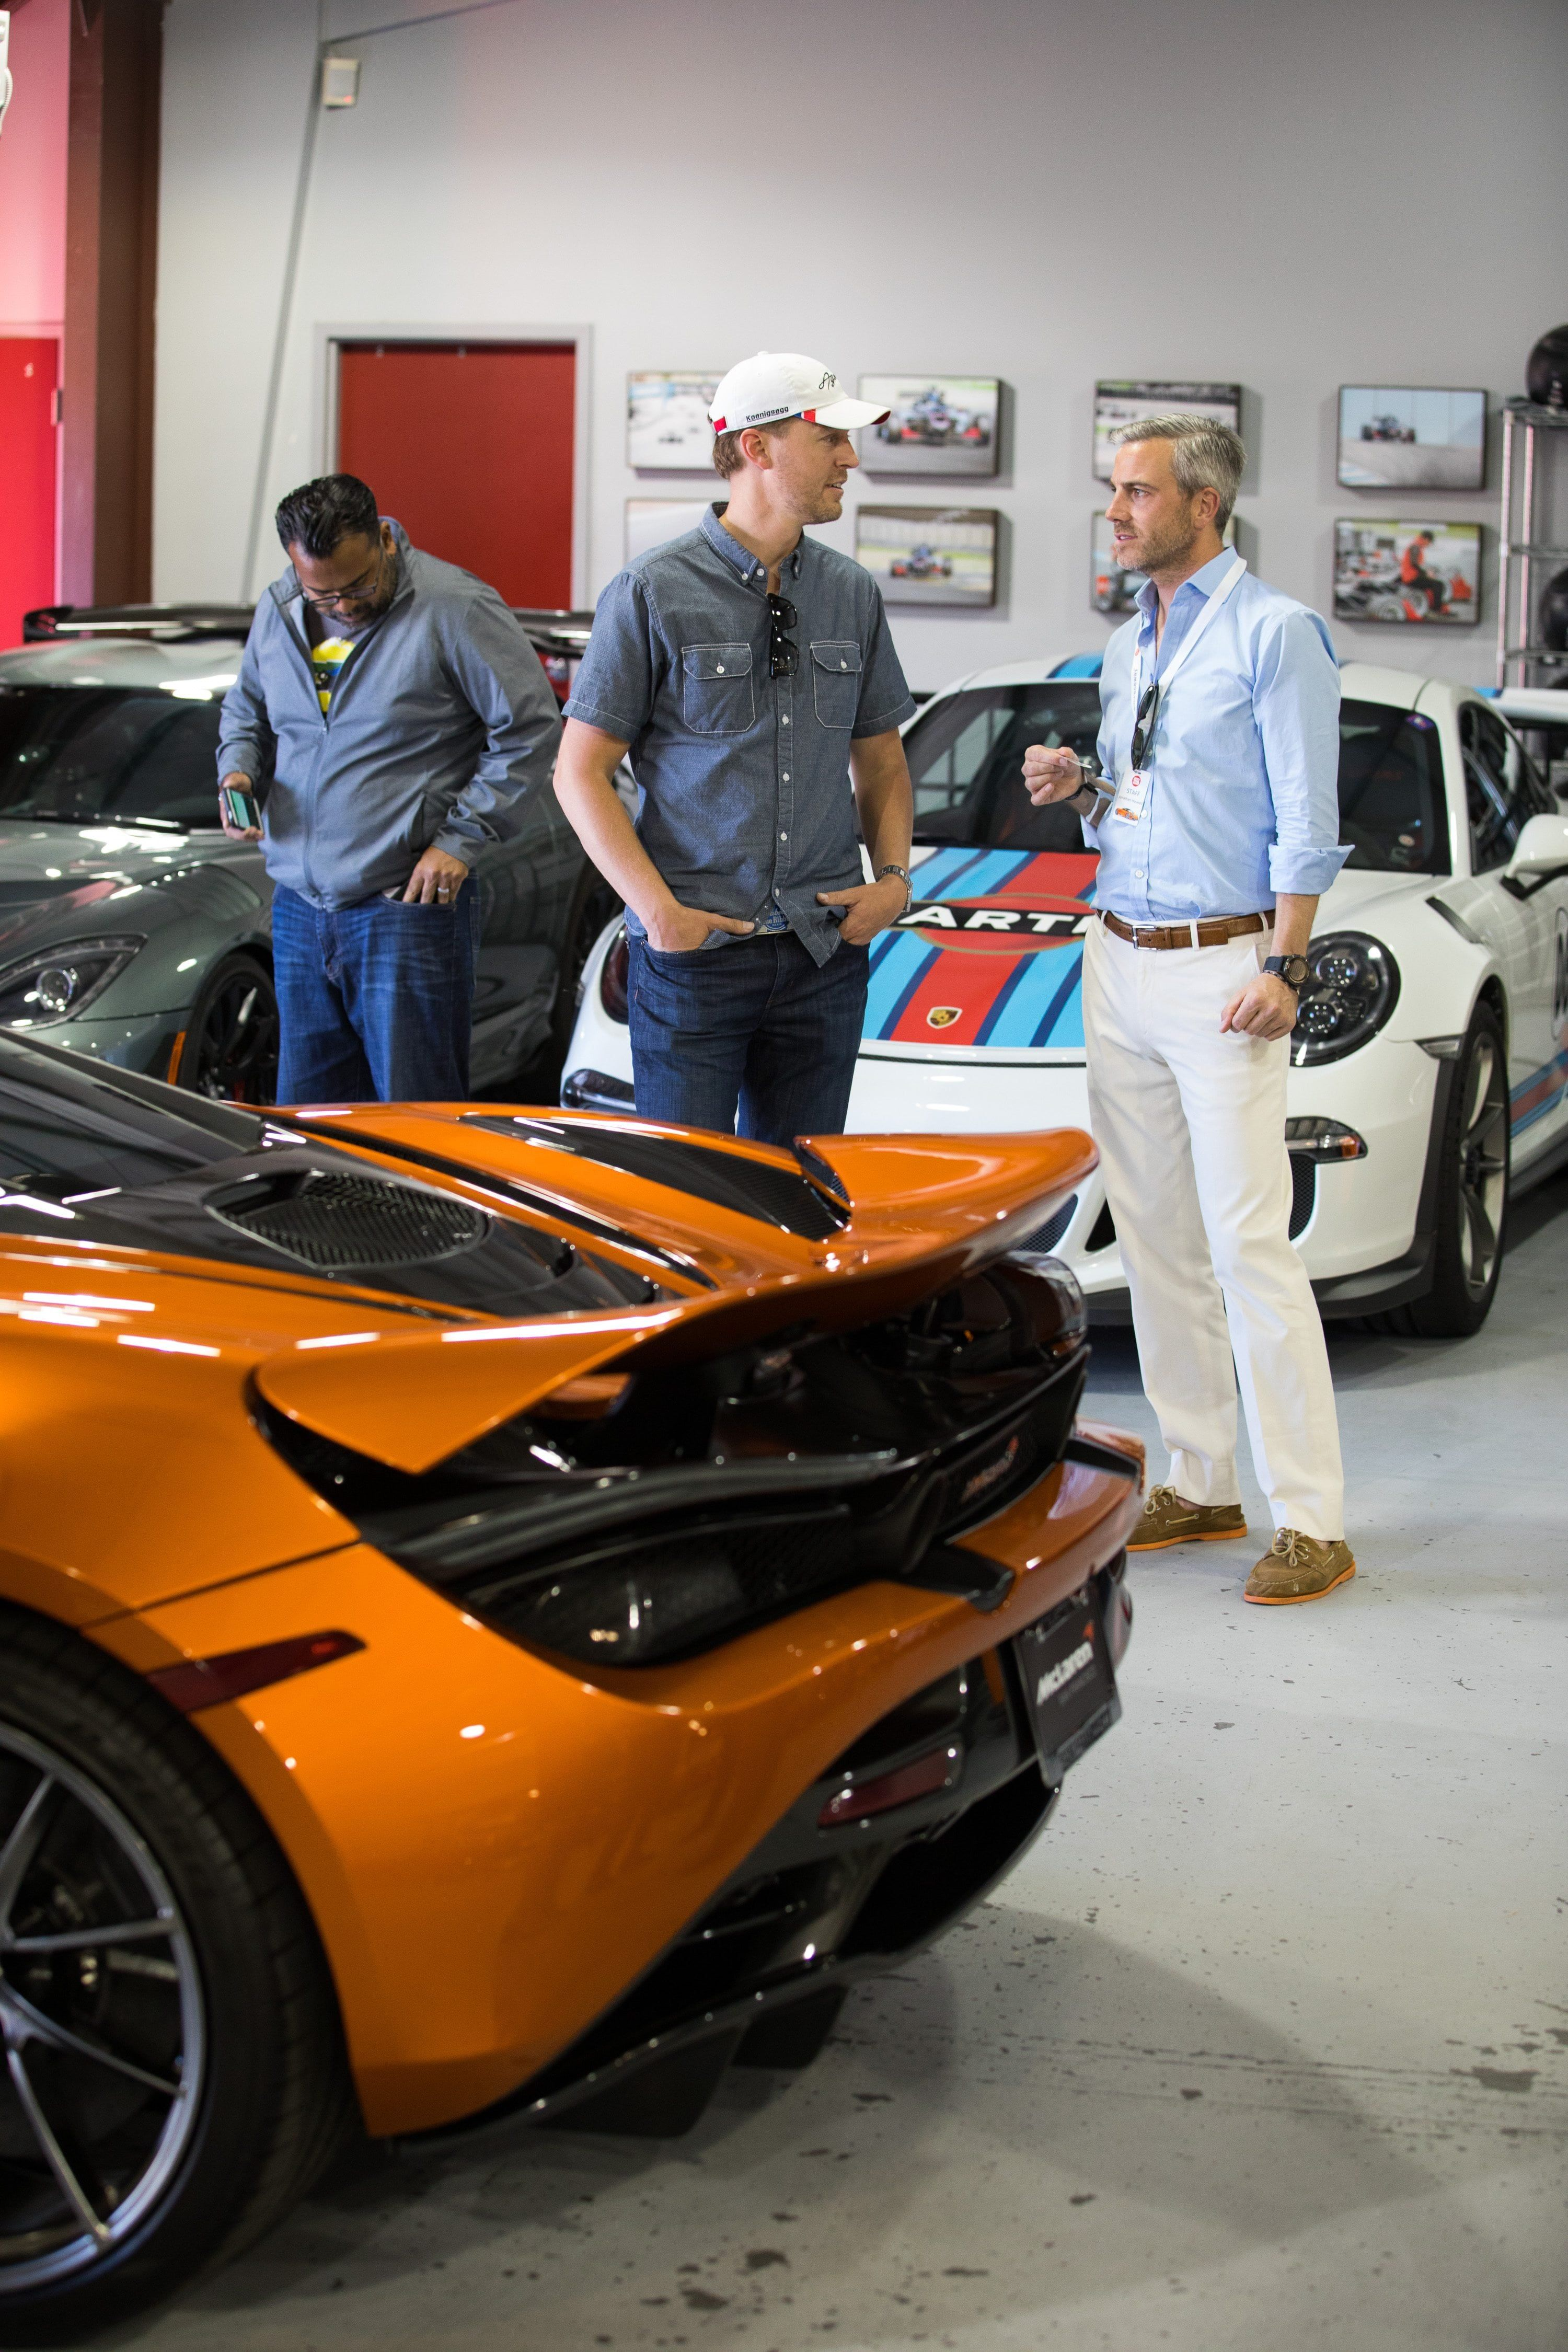 Mclaren 720s Exclusive Preview Of New Part Of Mclaren Driving Experience Mclaren Driving Experience Race Cars